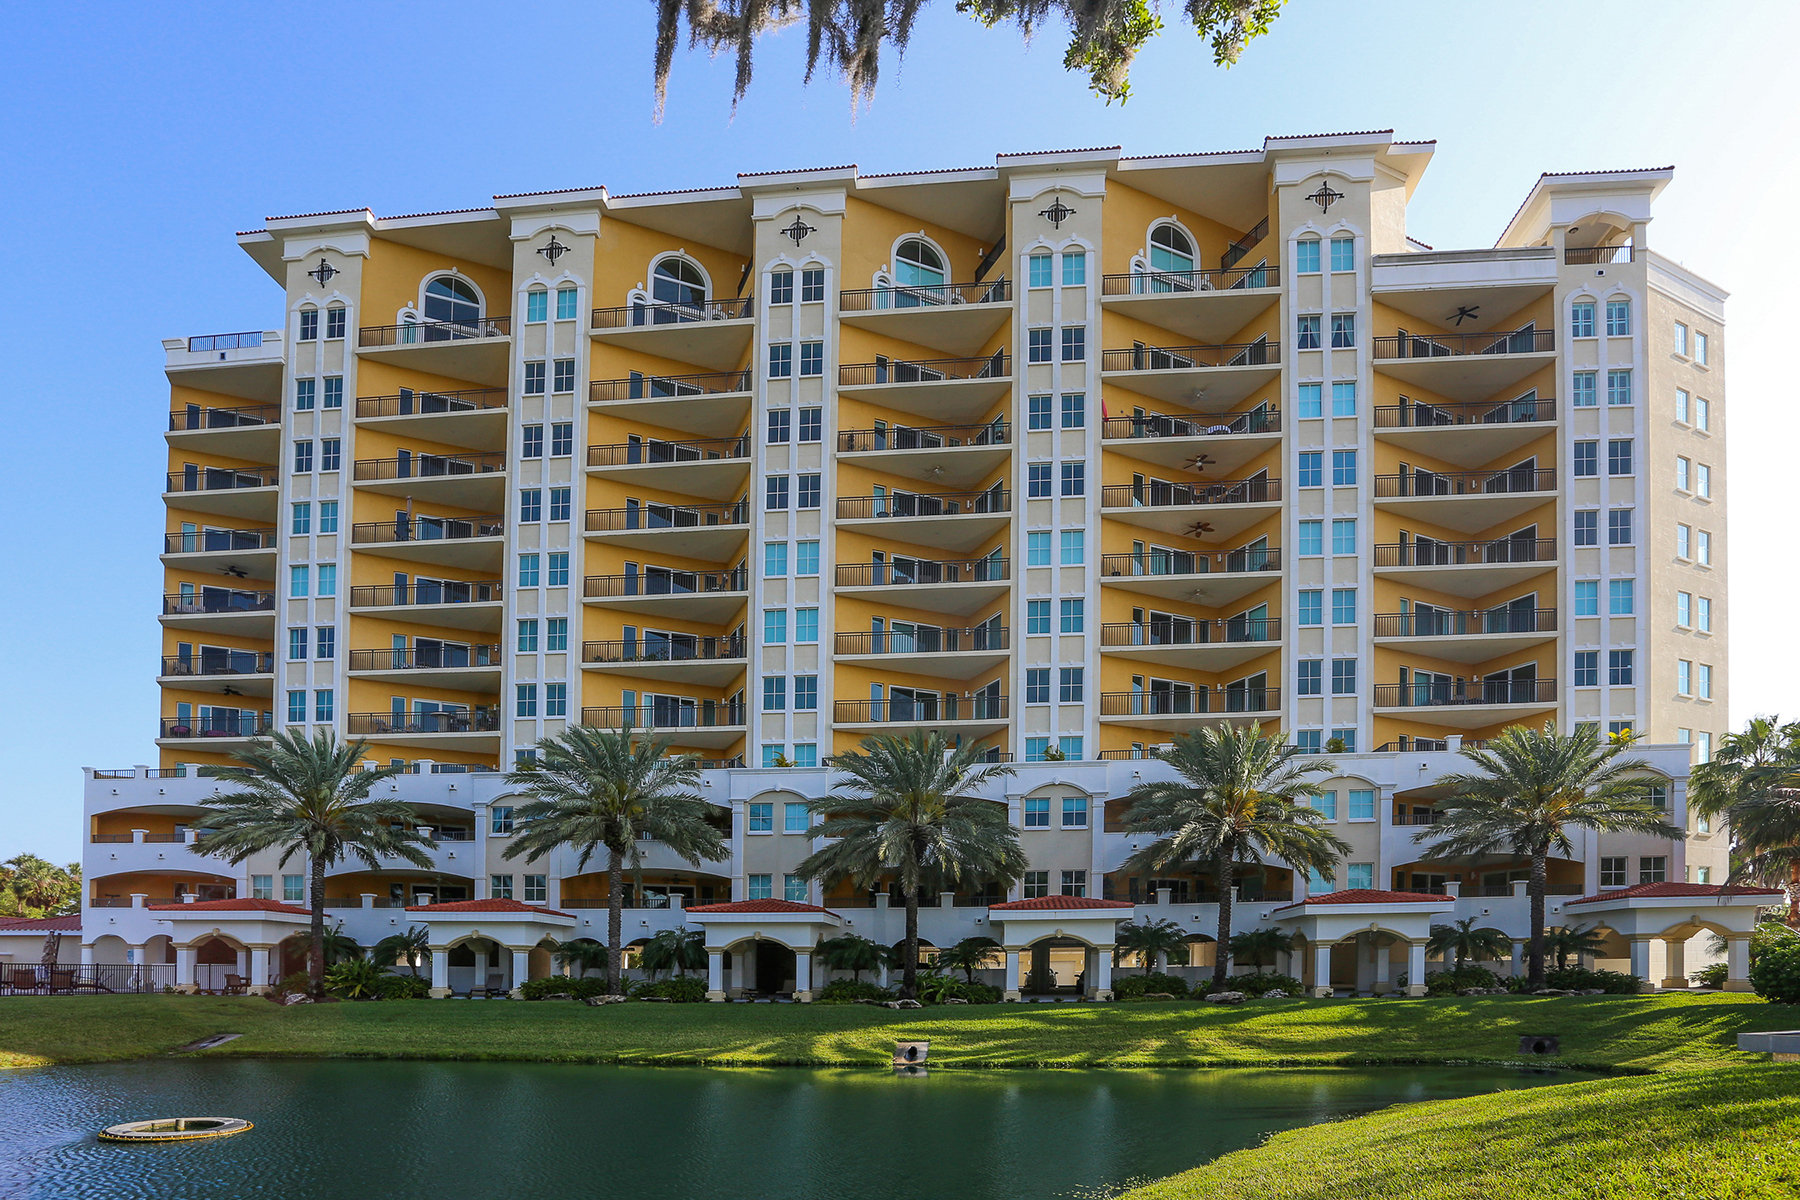 Condominium for Sale at PALMETTO 501 Haben Blvd 203 Palmetto, Florida, 34221 United States